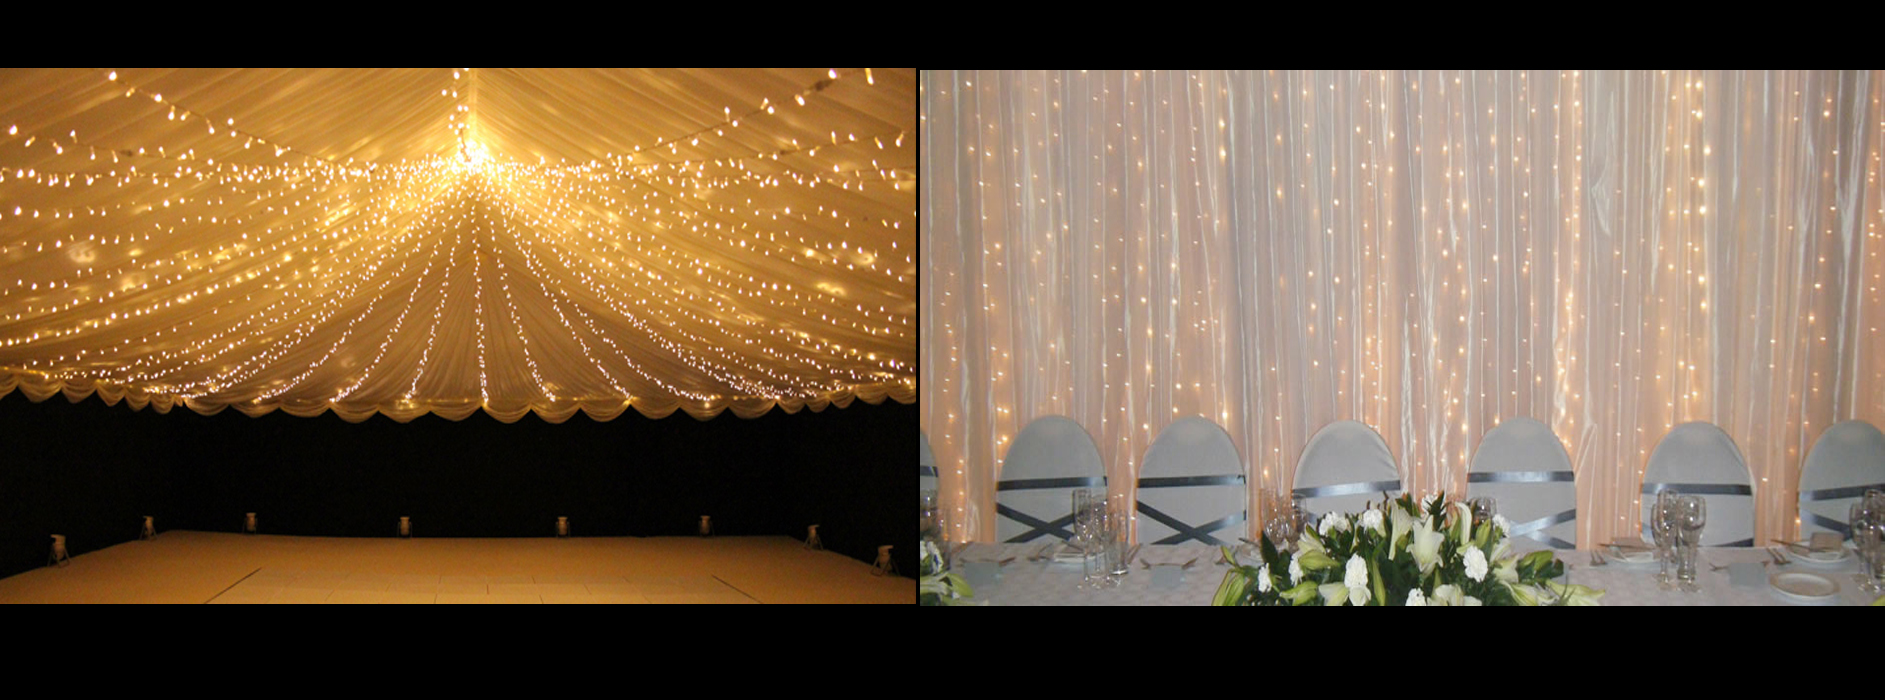 curtains-and-fairy-lights